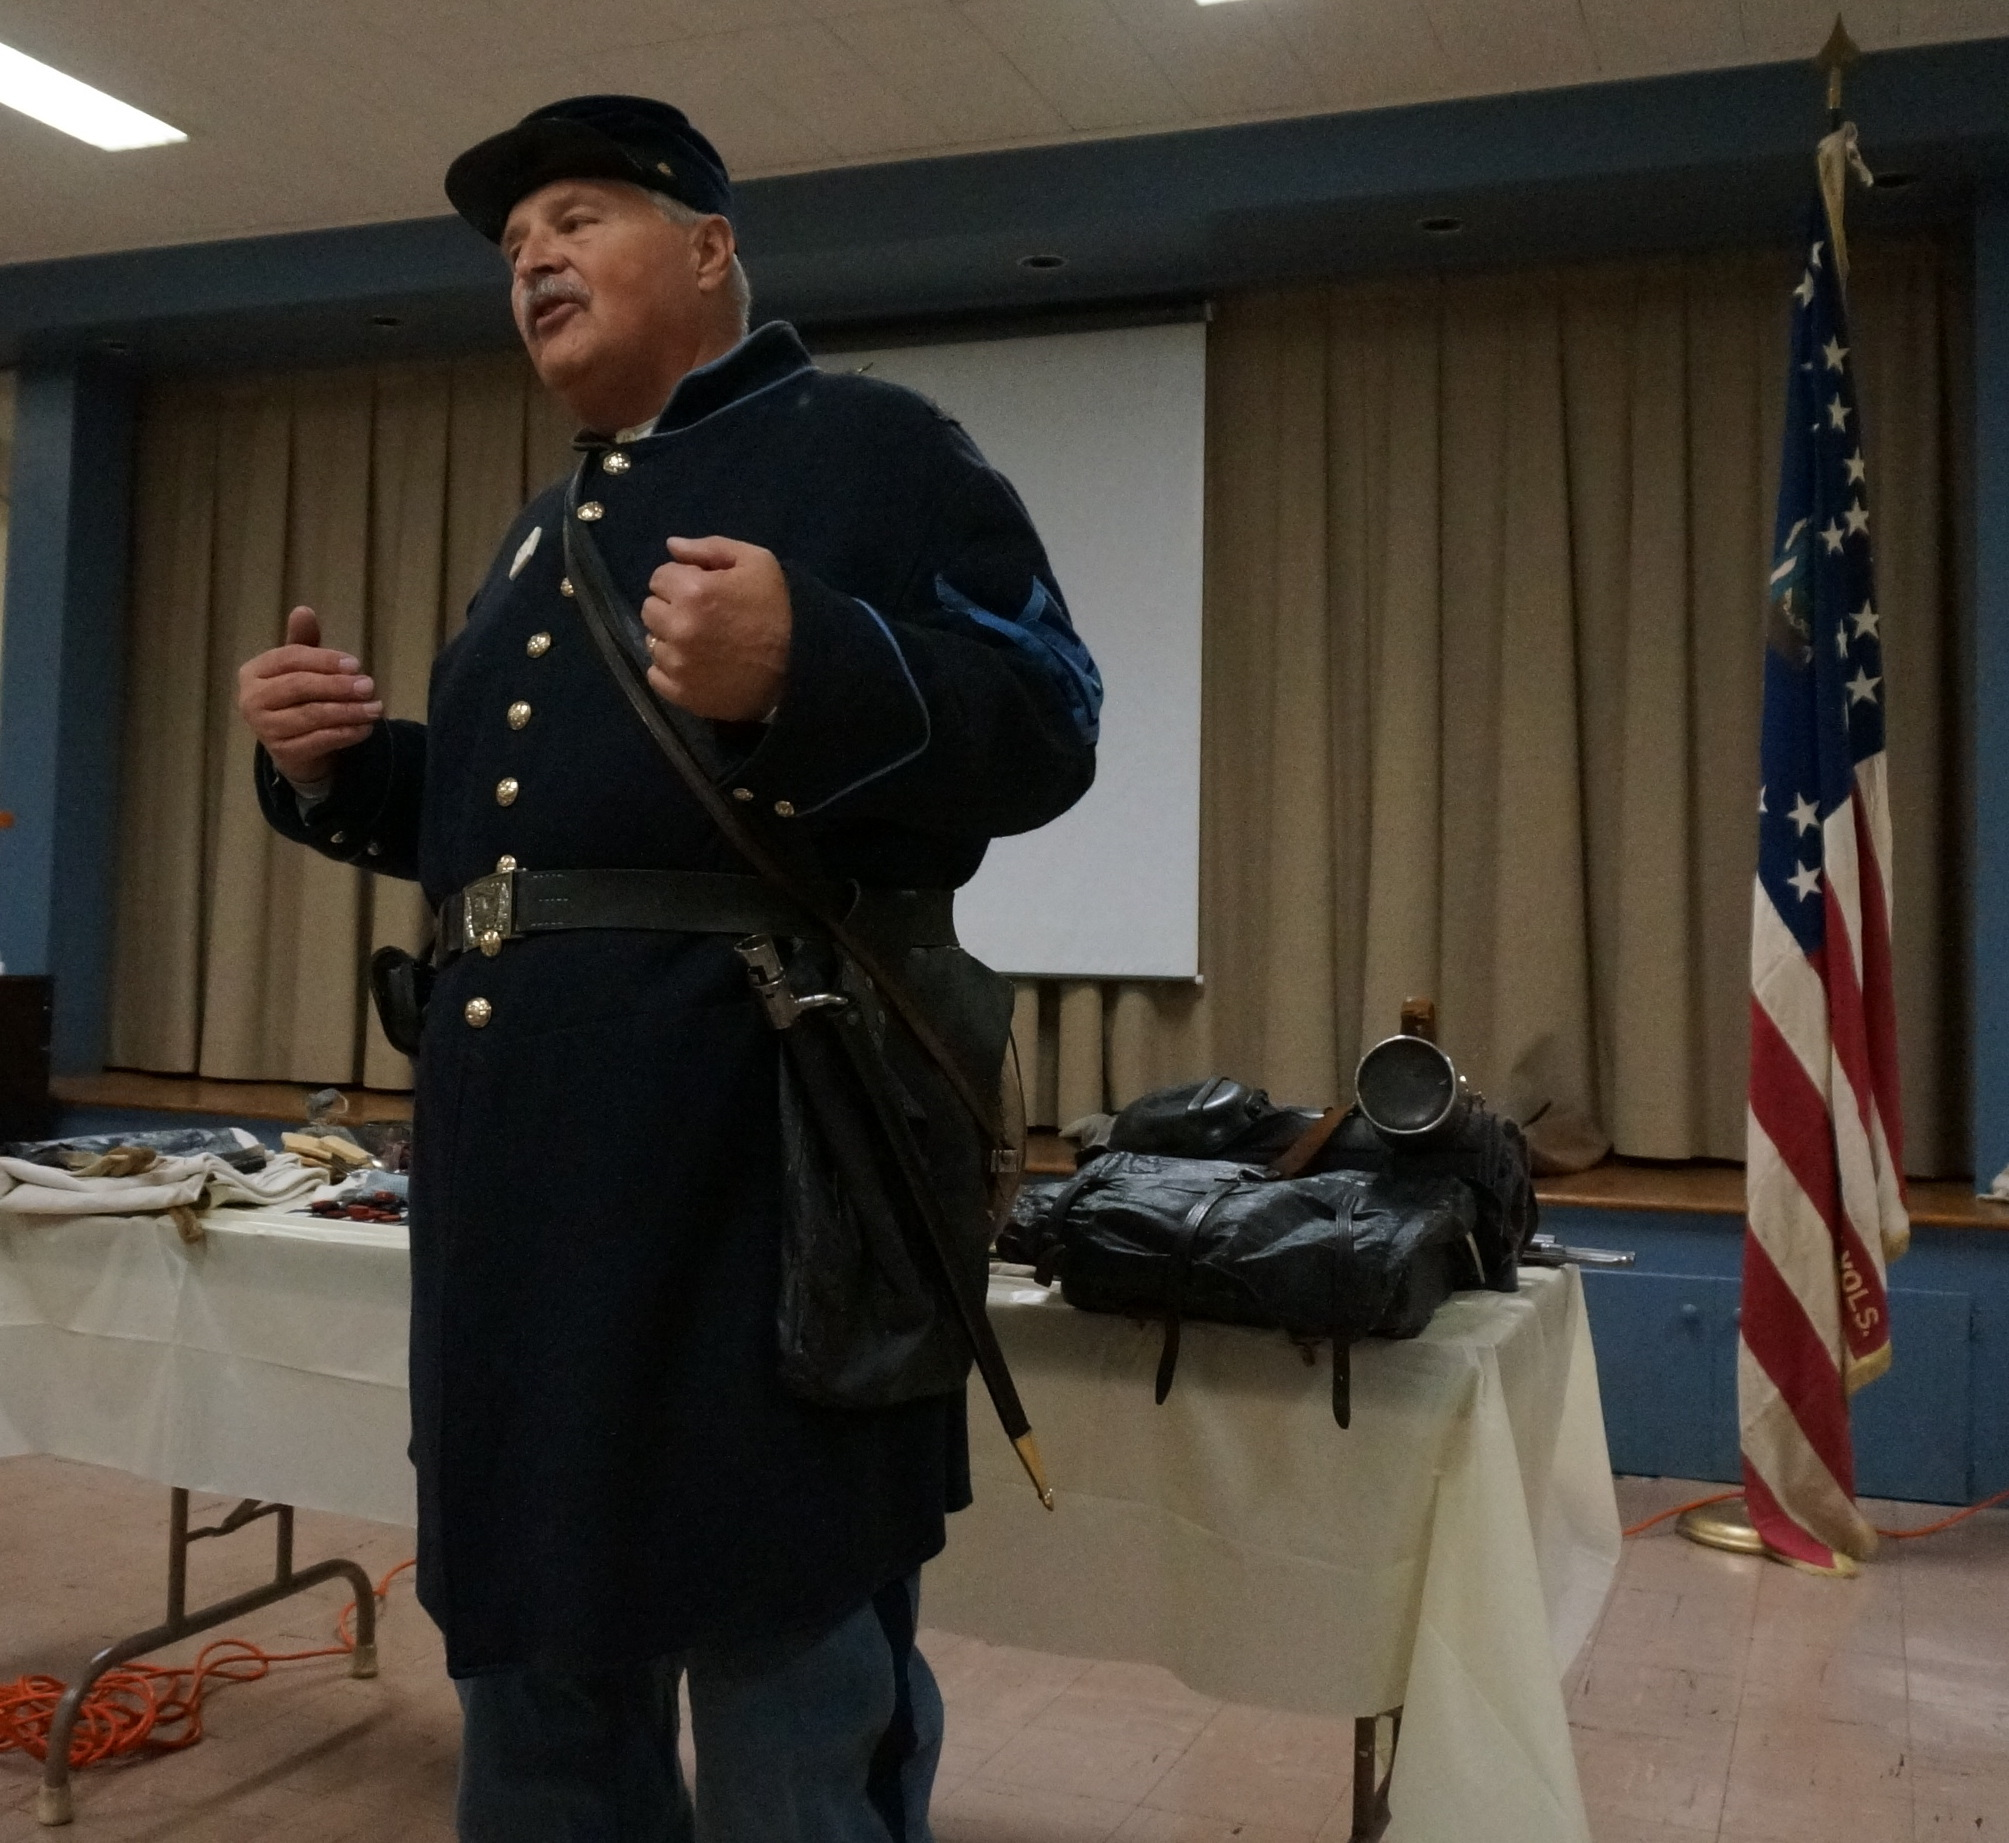 2ed1cec88f3997657806_best_Boy_Scout_Troop_meeting_re-enactor_042.JPG